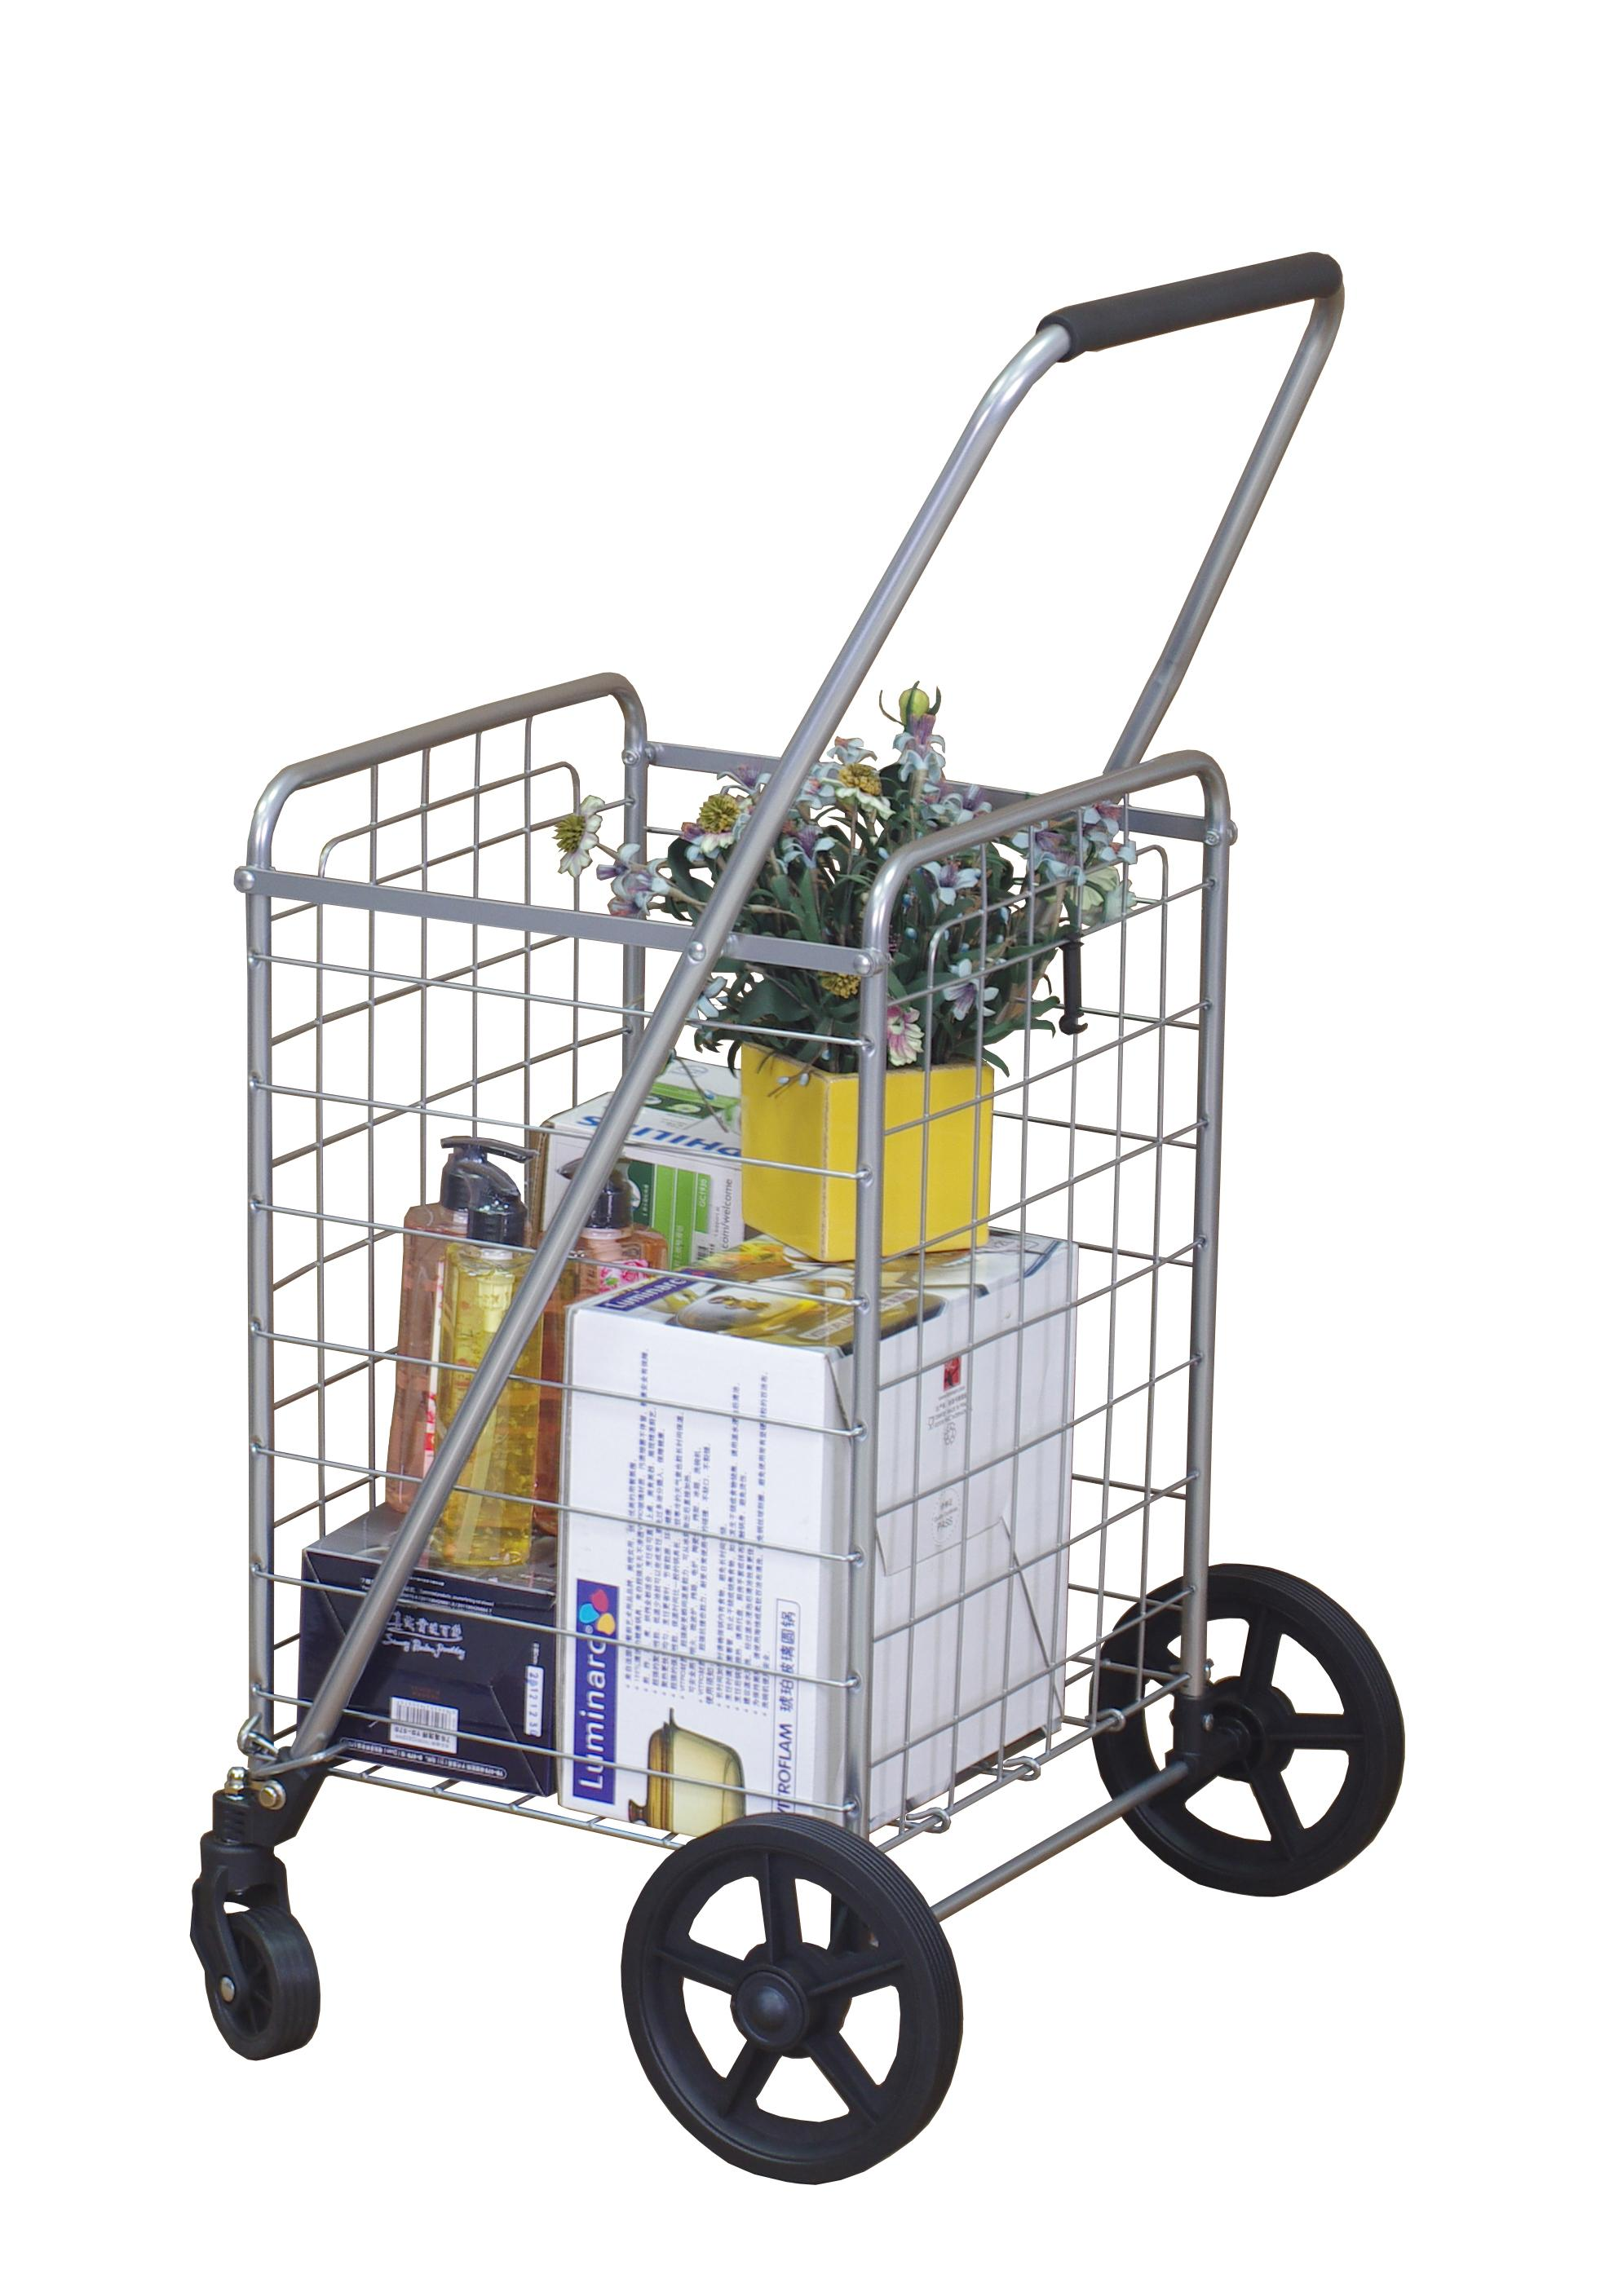 wellmax wm99024s grocery utility shopping cart easily collapsible and portable to save space heavy duty light weight trolley with rolling swivel wheels